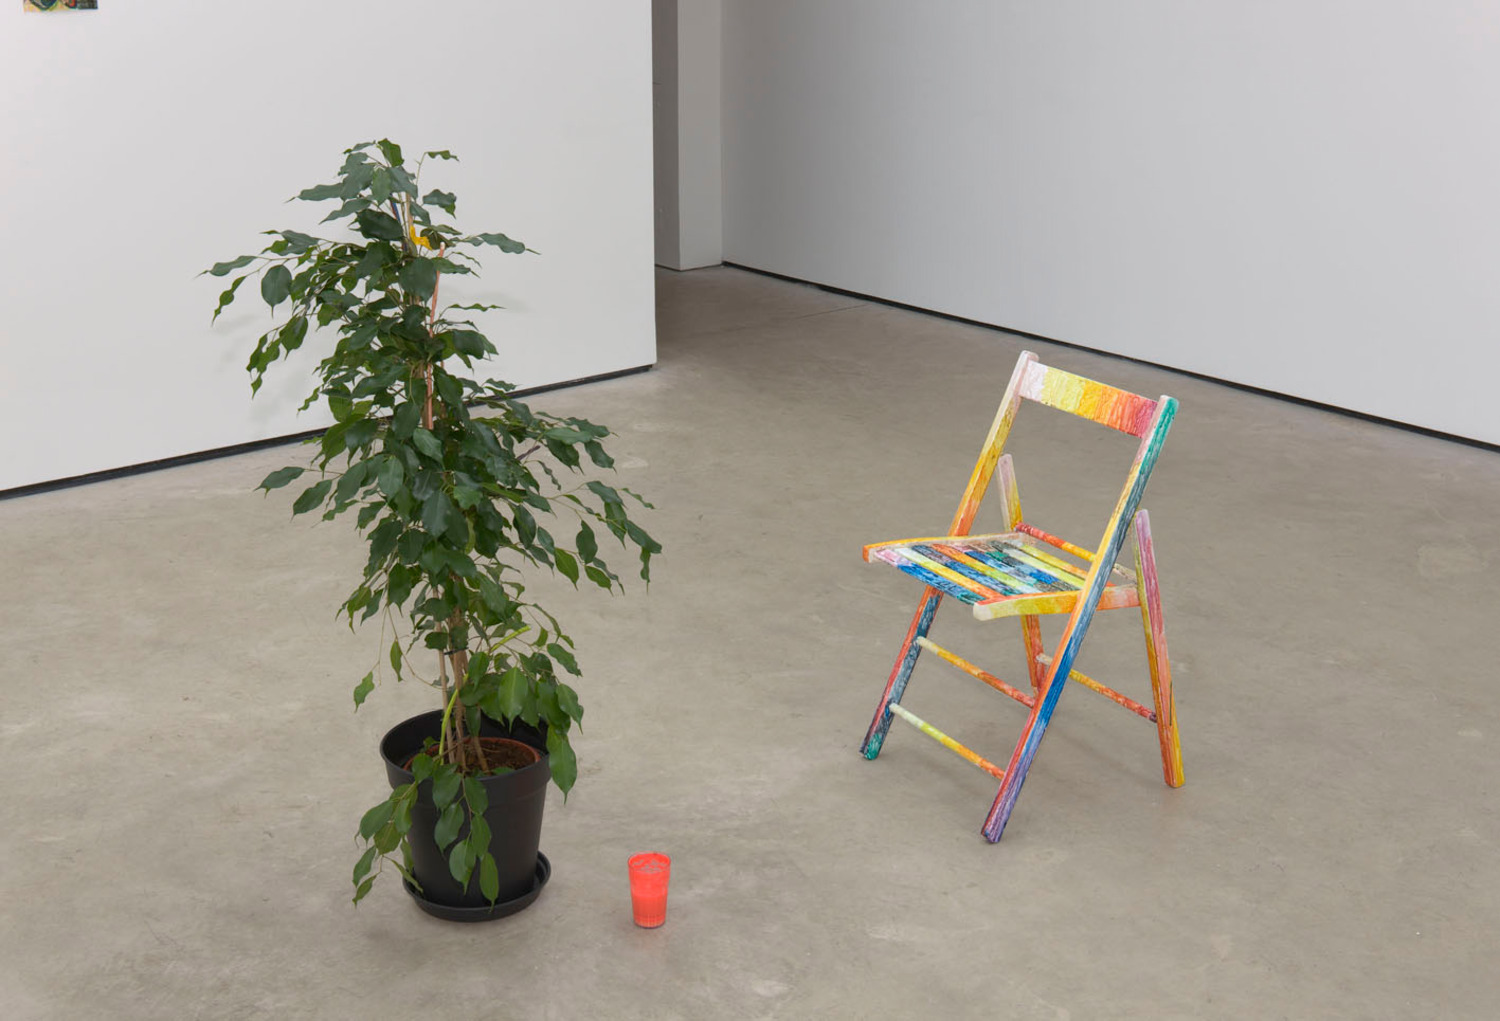 Hayley Tompkins, No Title (left), 2011 and Chair (right), 2011, Potted plant, clay, watercolour, fruit peel, leaf, plastic glass, powder paint, water (left); Watercolour on wood (right), Dimension Variable